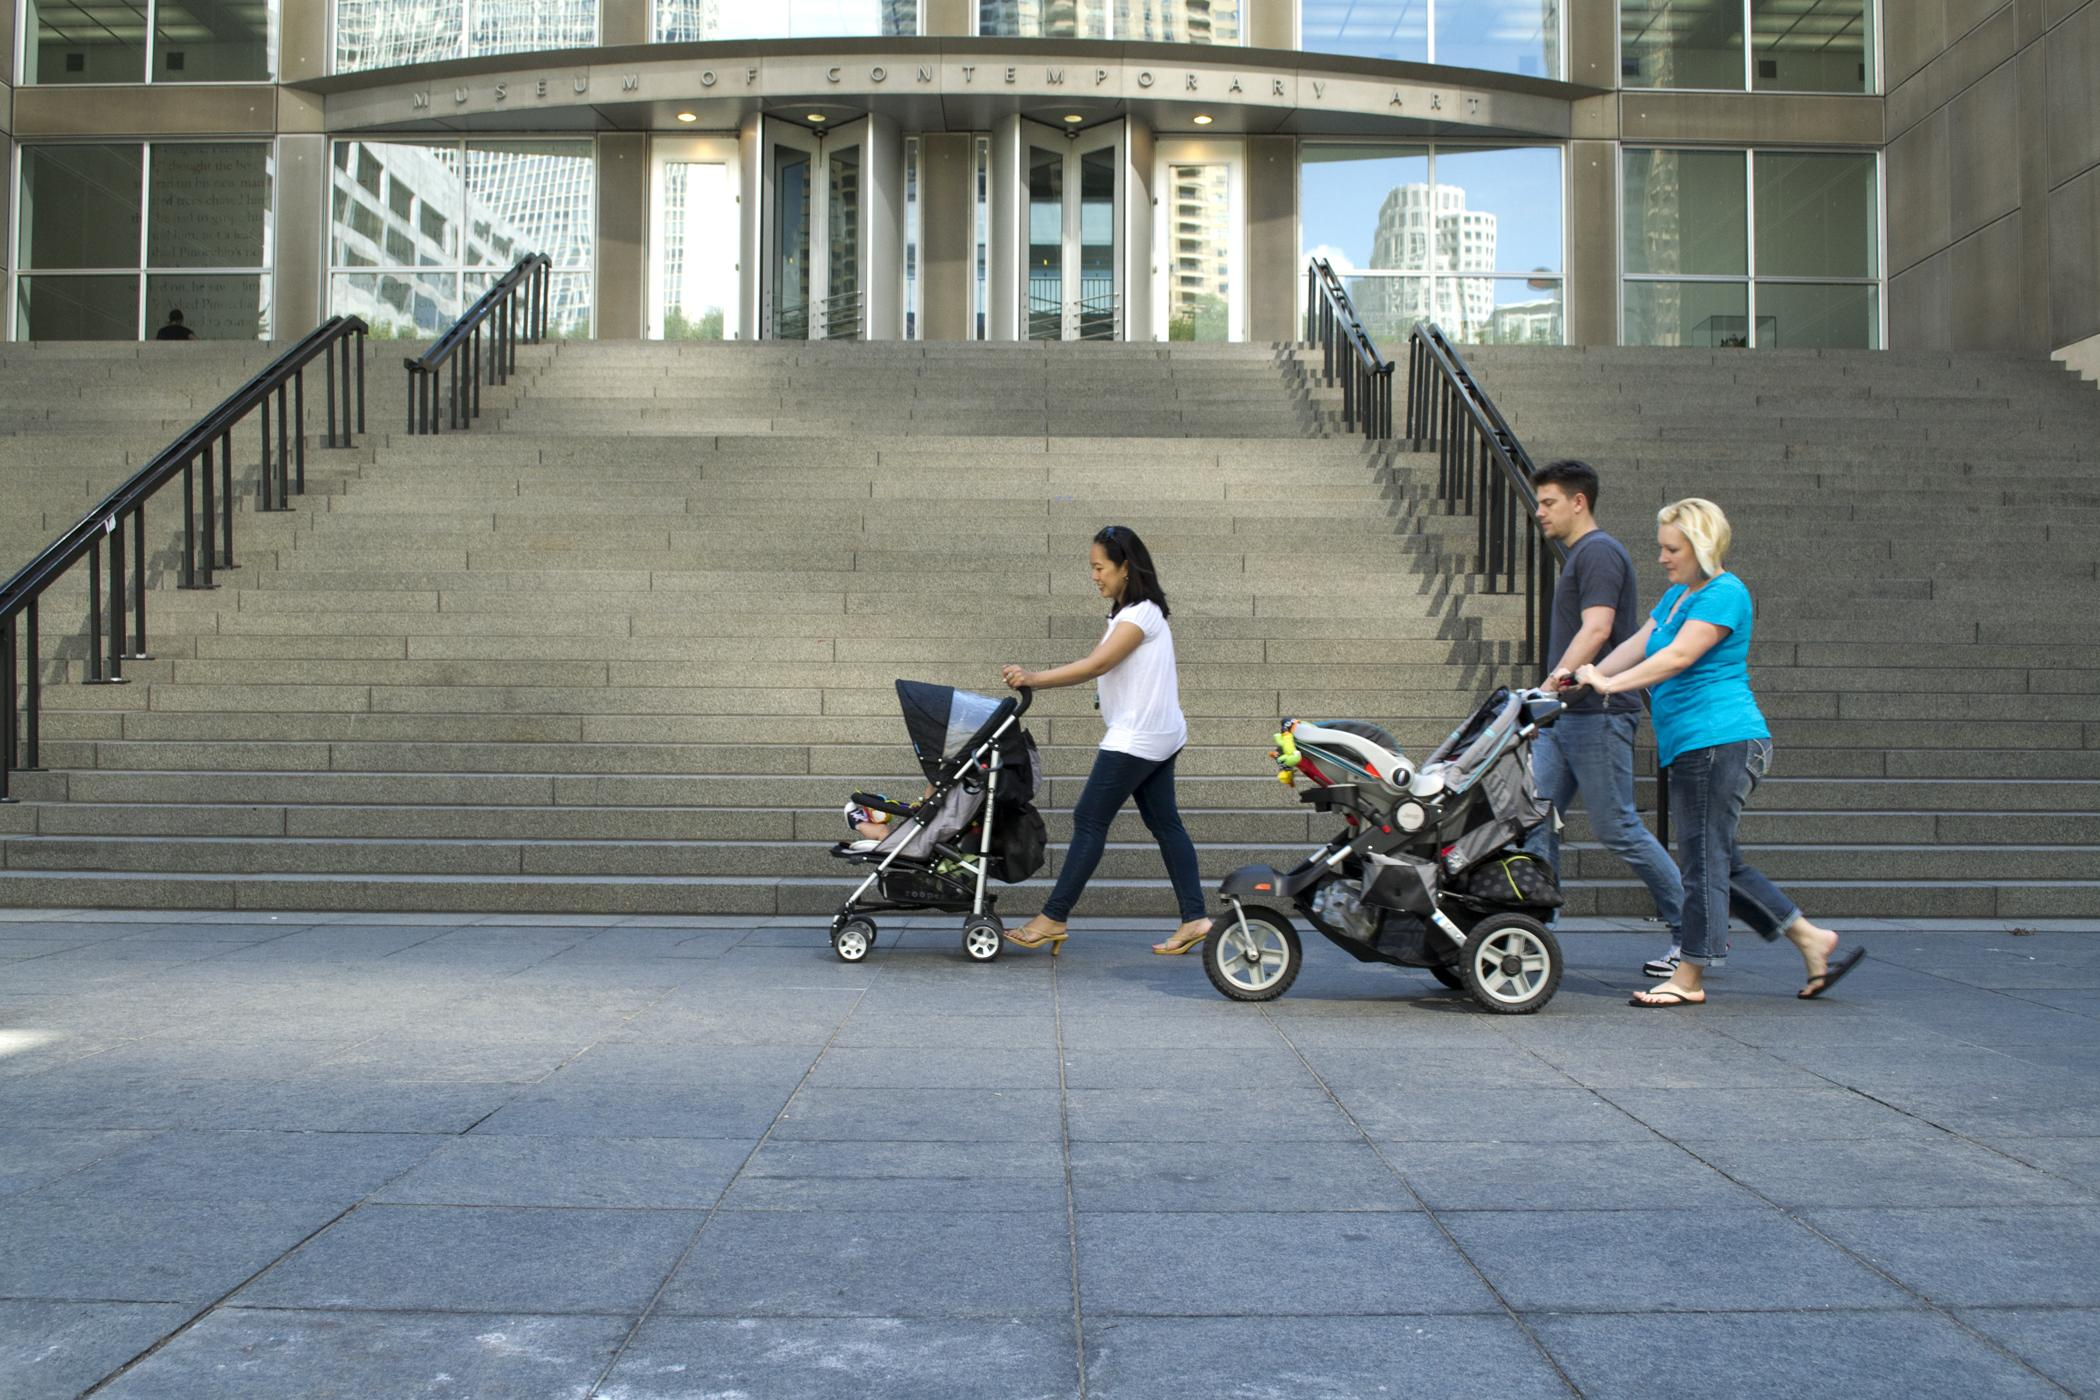 Three adults walk across the MCA plaza on a sunny day, two are pushing strollers.